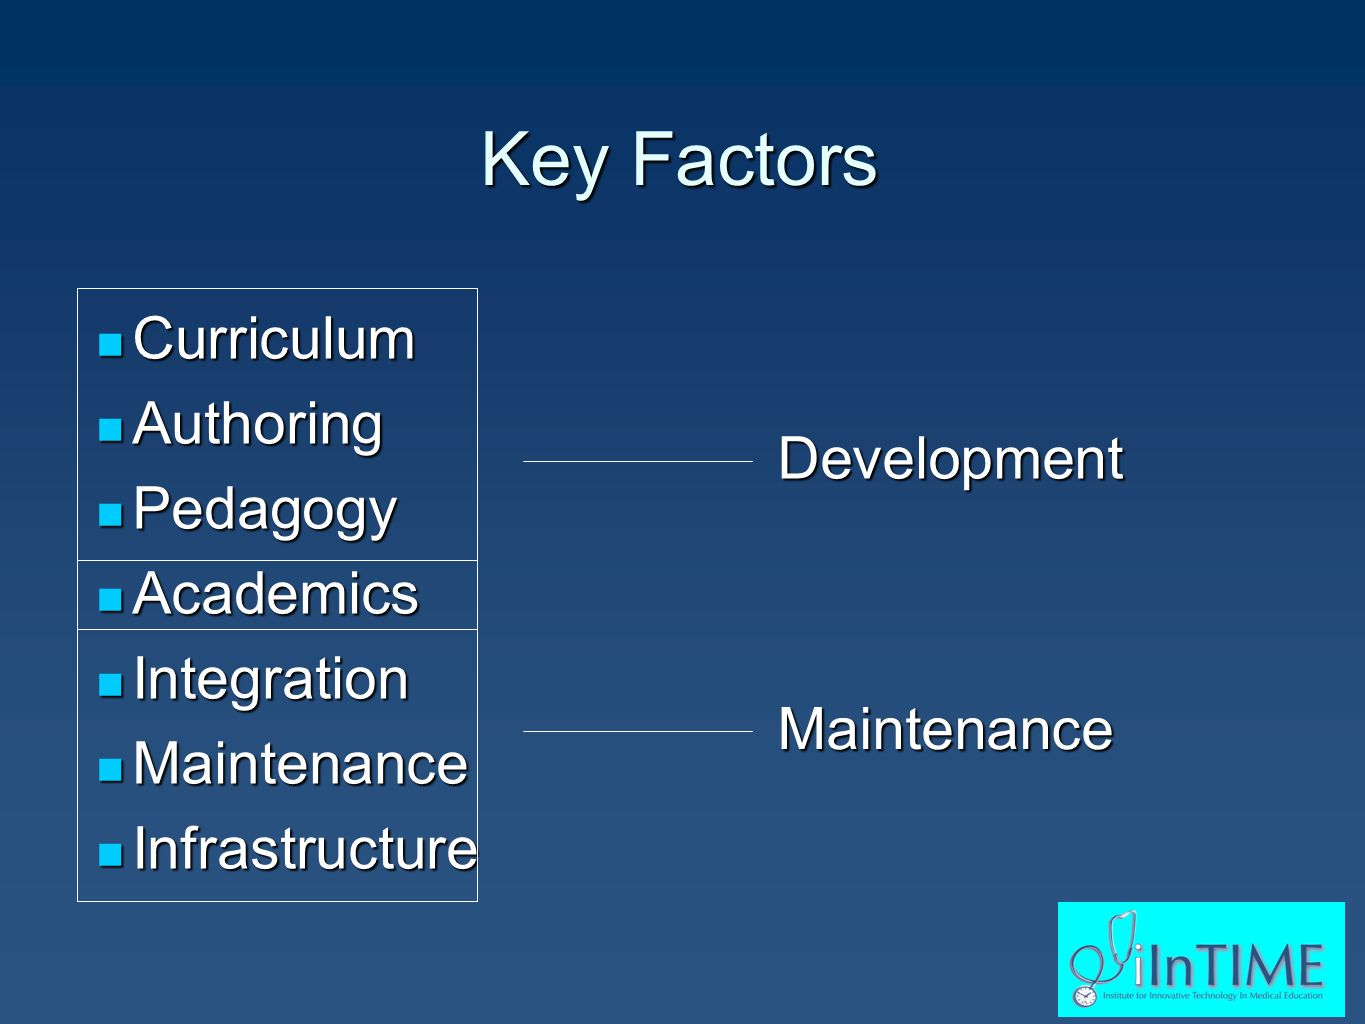 Key Factors Curriculum Curriculum Authoring Authoring Pedagogy Pedagogy Academics Academics Integration Integration Maintenance Maintenance Infrastructure Infrastructure Development Maintenance